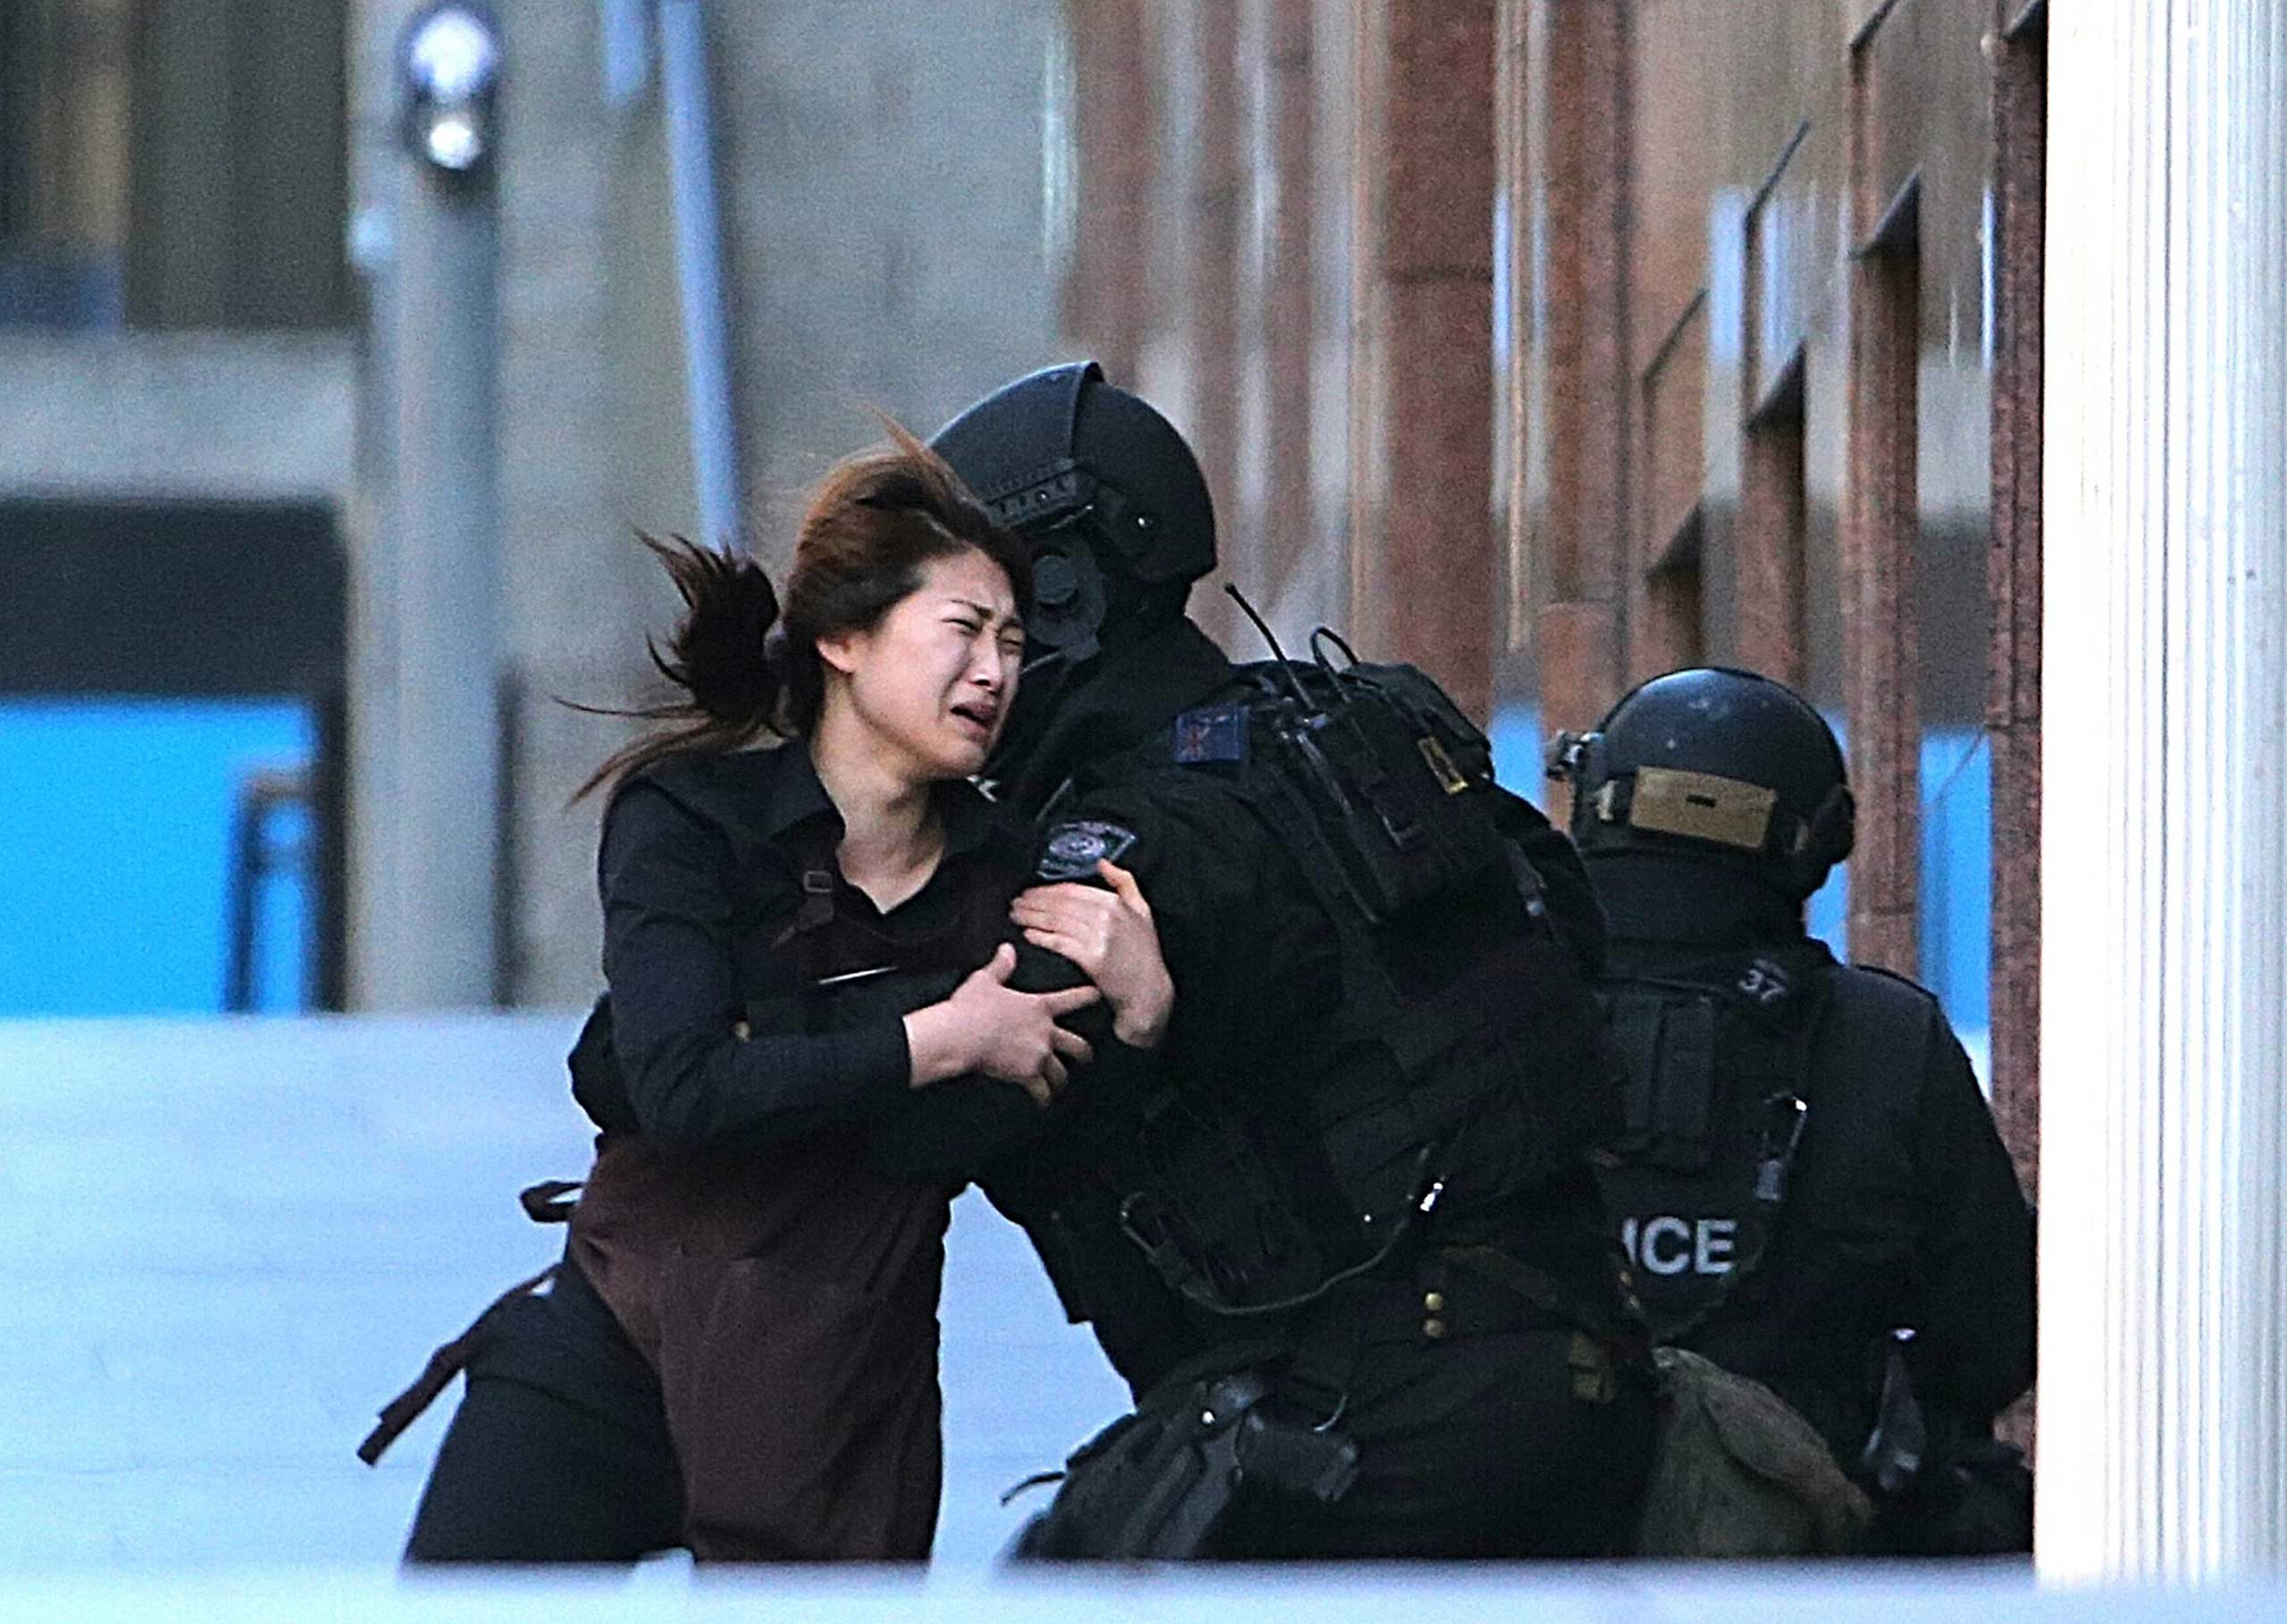 Dec. 15, 2014. A hostage runs to armed tactical response police officers for safety after she escaped from a cafe under siege at Martin Place in the central business district of Sydney, Australia.